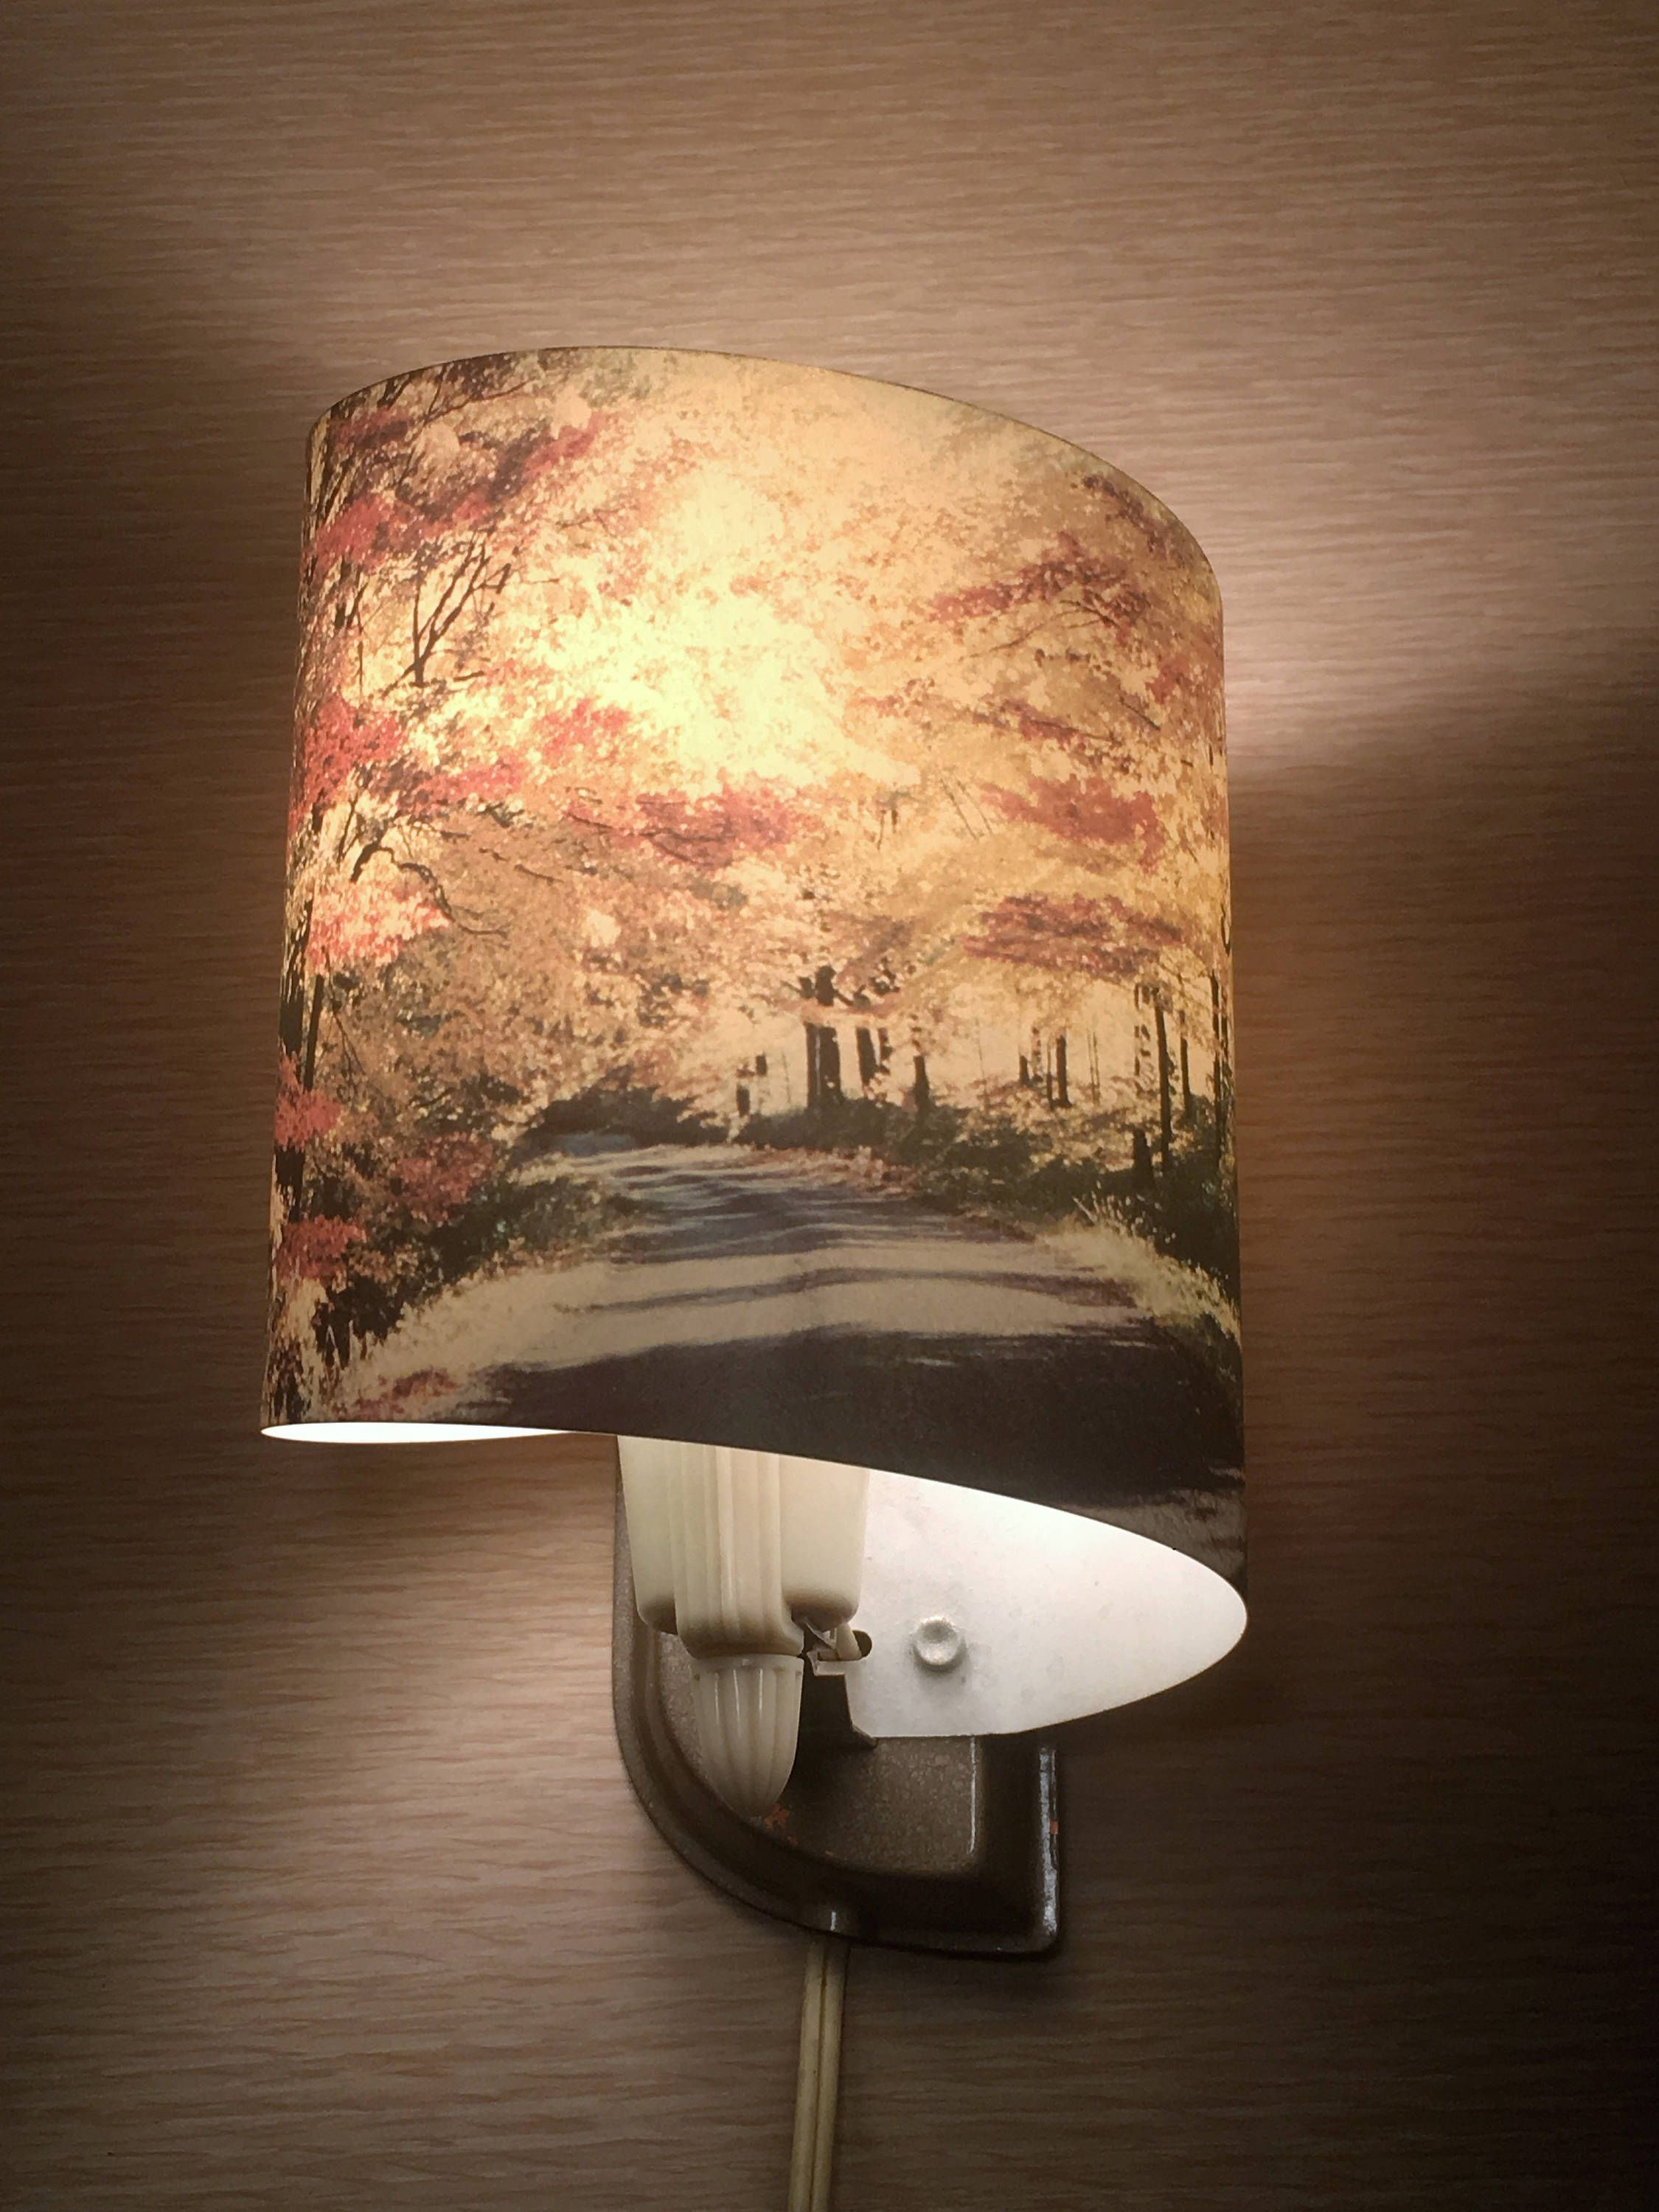 Coz 1light Wall Sconce Lighting With White Fabric Shade Wall Mount Lamp In Nickel Finish Wall S Wall Mounted Lamps Wall Sconce Lighting Bathroom Light Fixtures